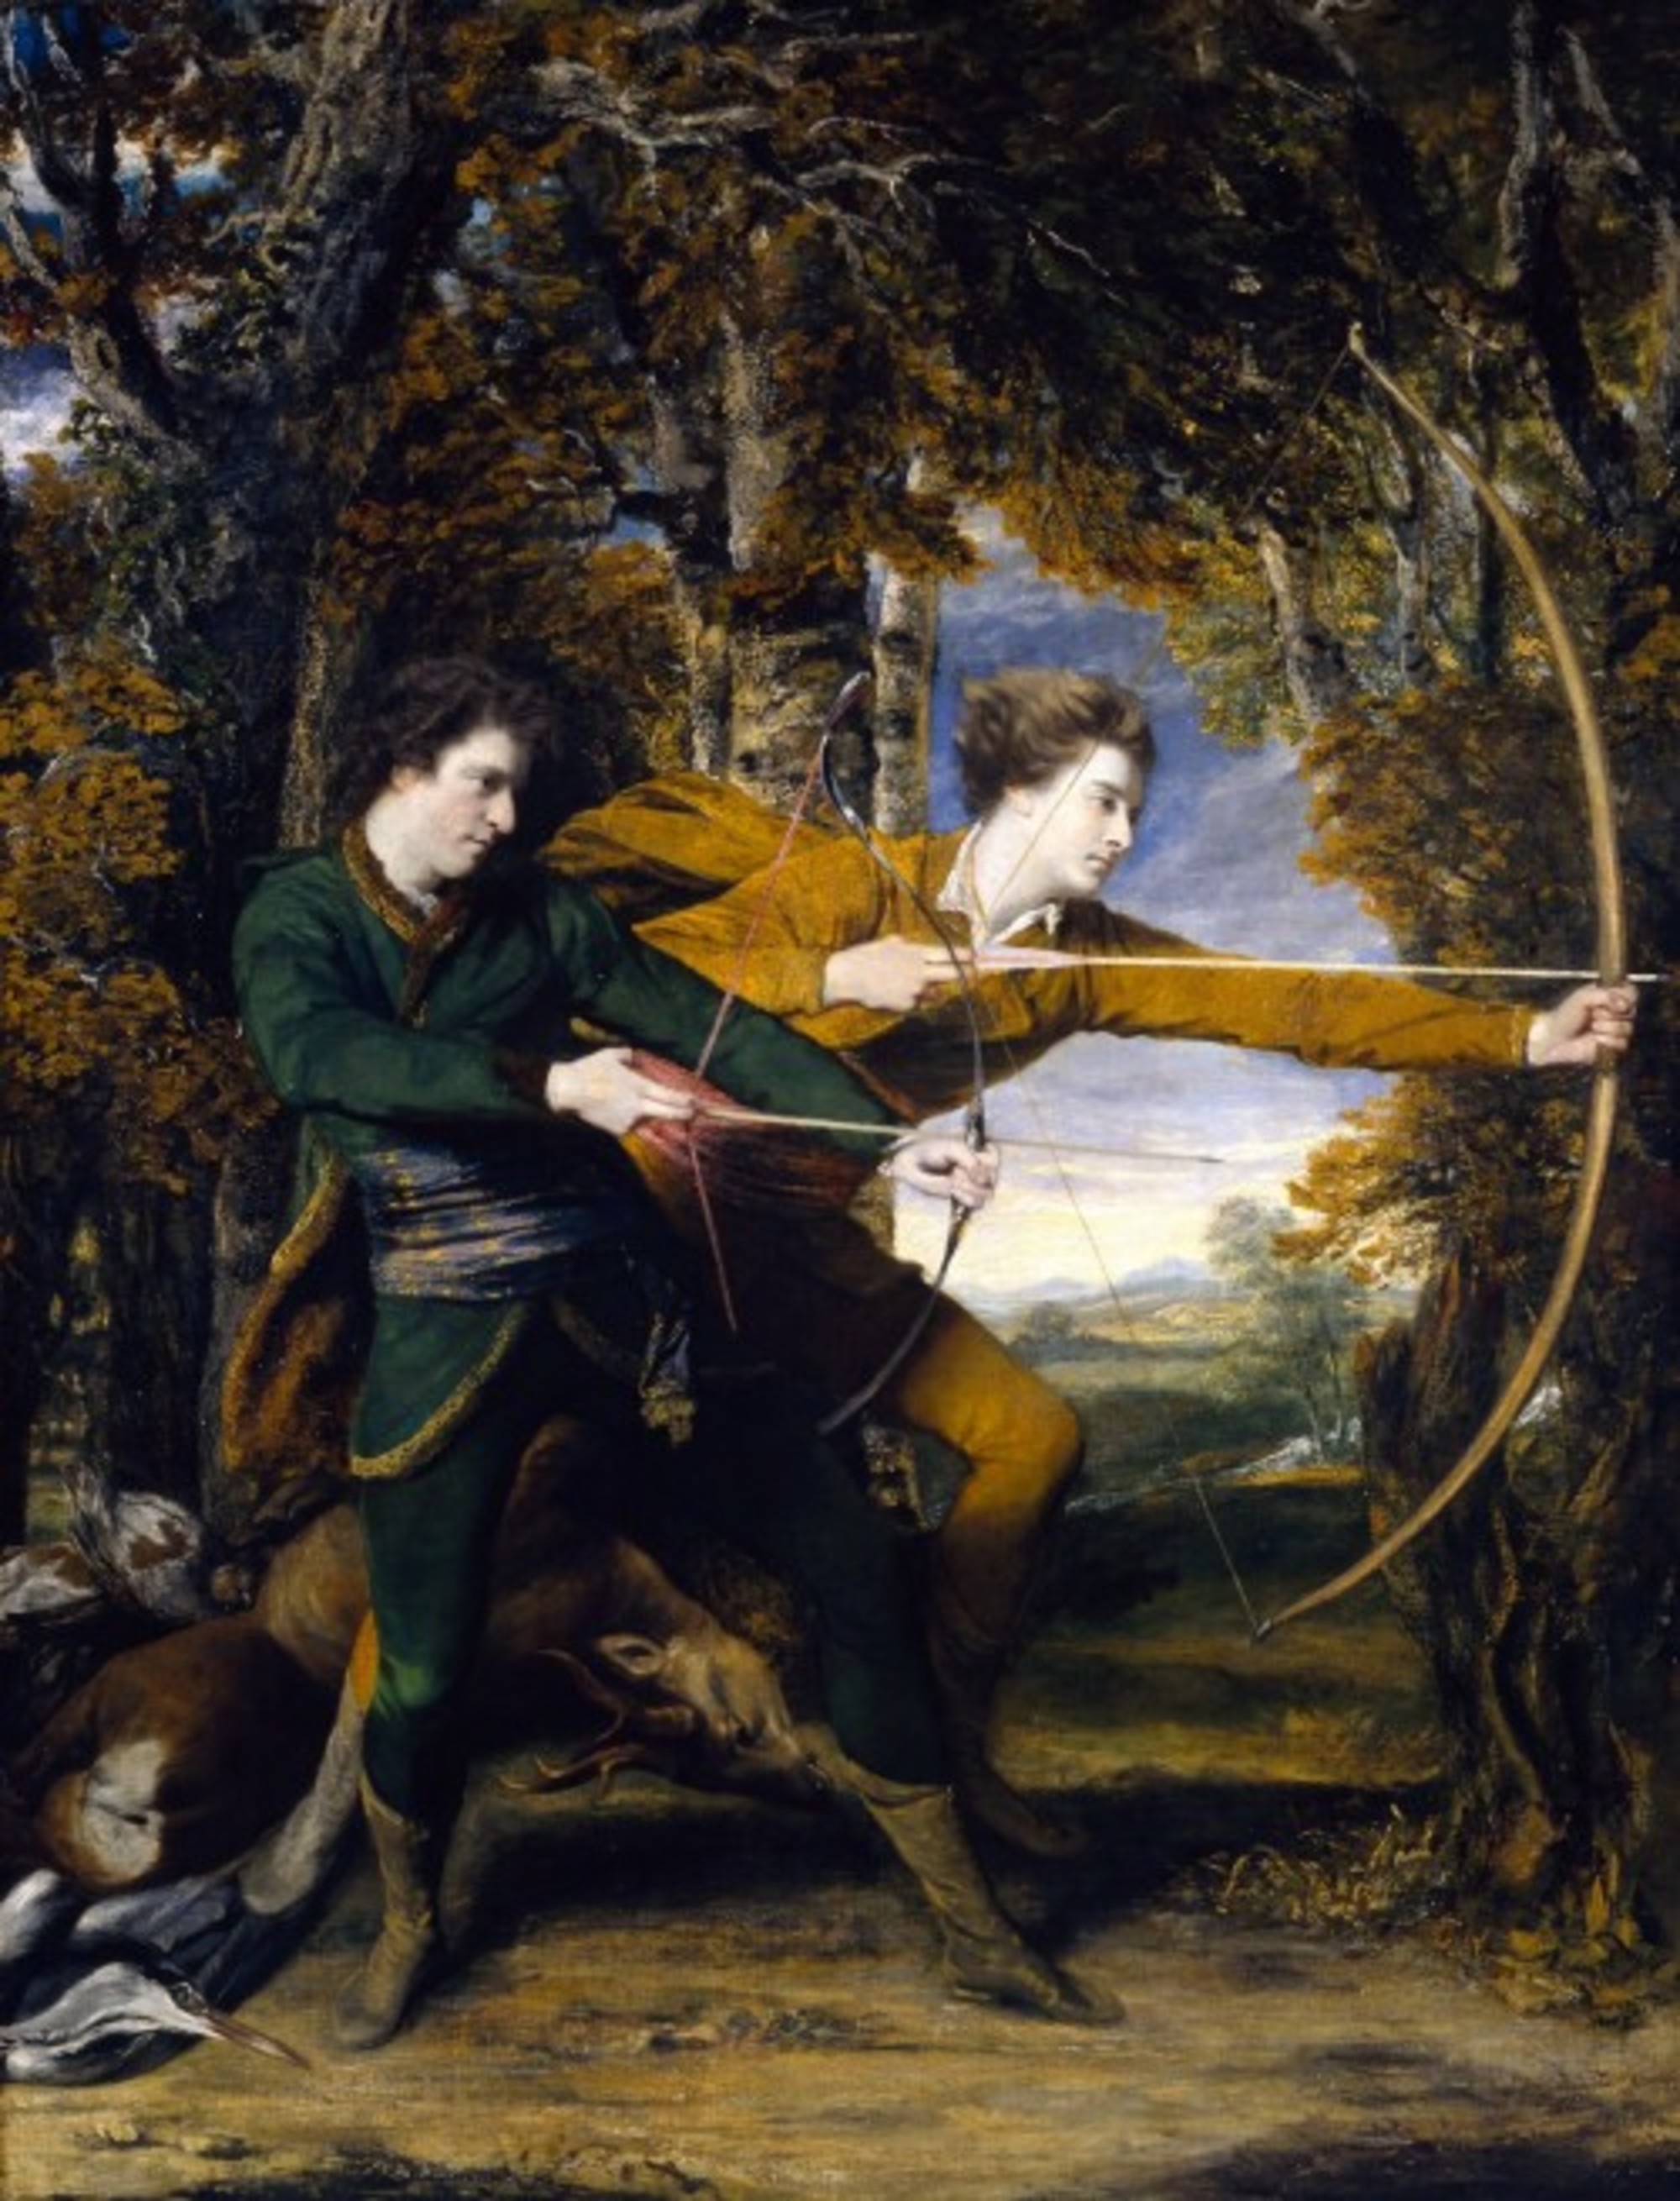 Sir-Joshua-Reynolds---Colonel-Acland-and-Lord-Sydney-The-Archers-Tate-Britain.jpg